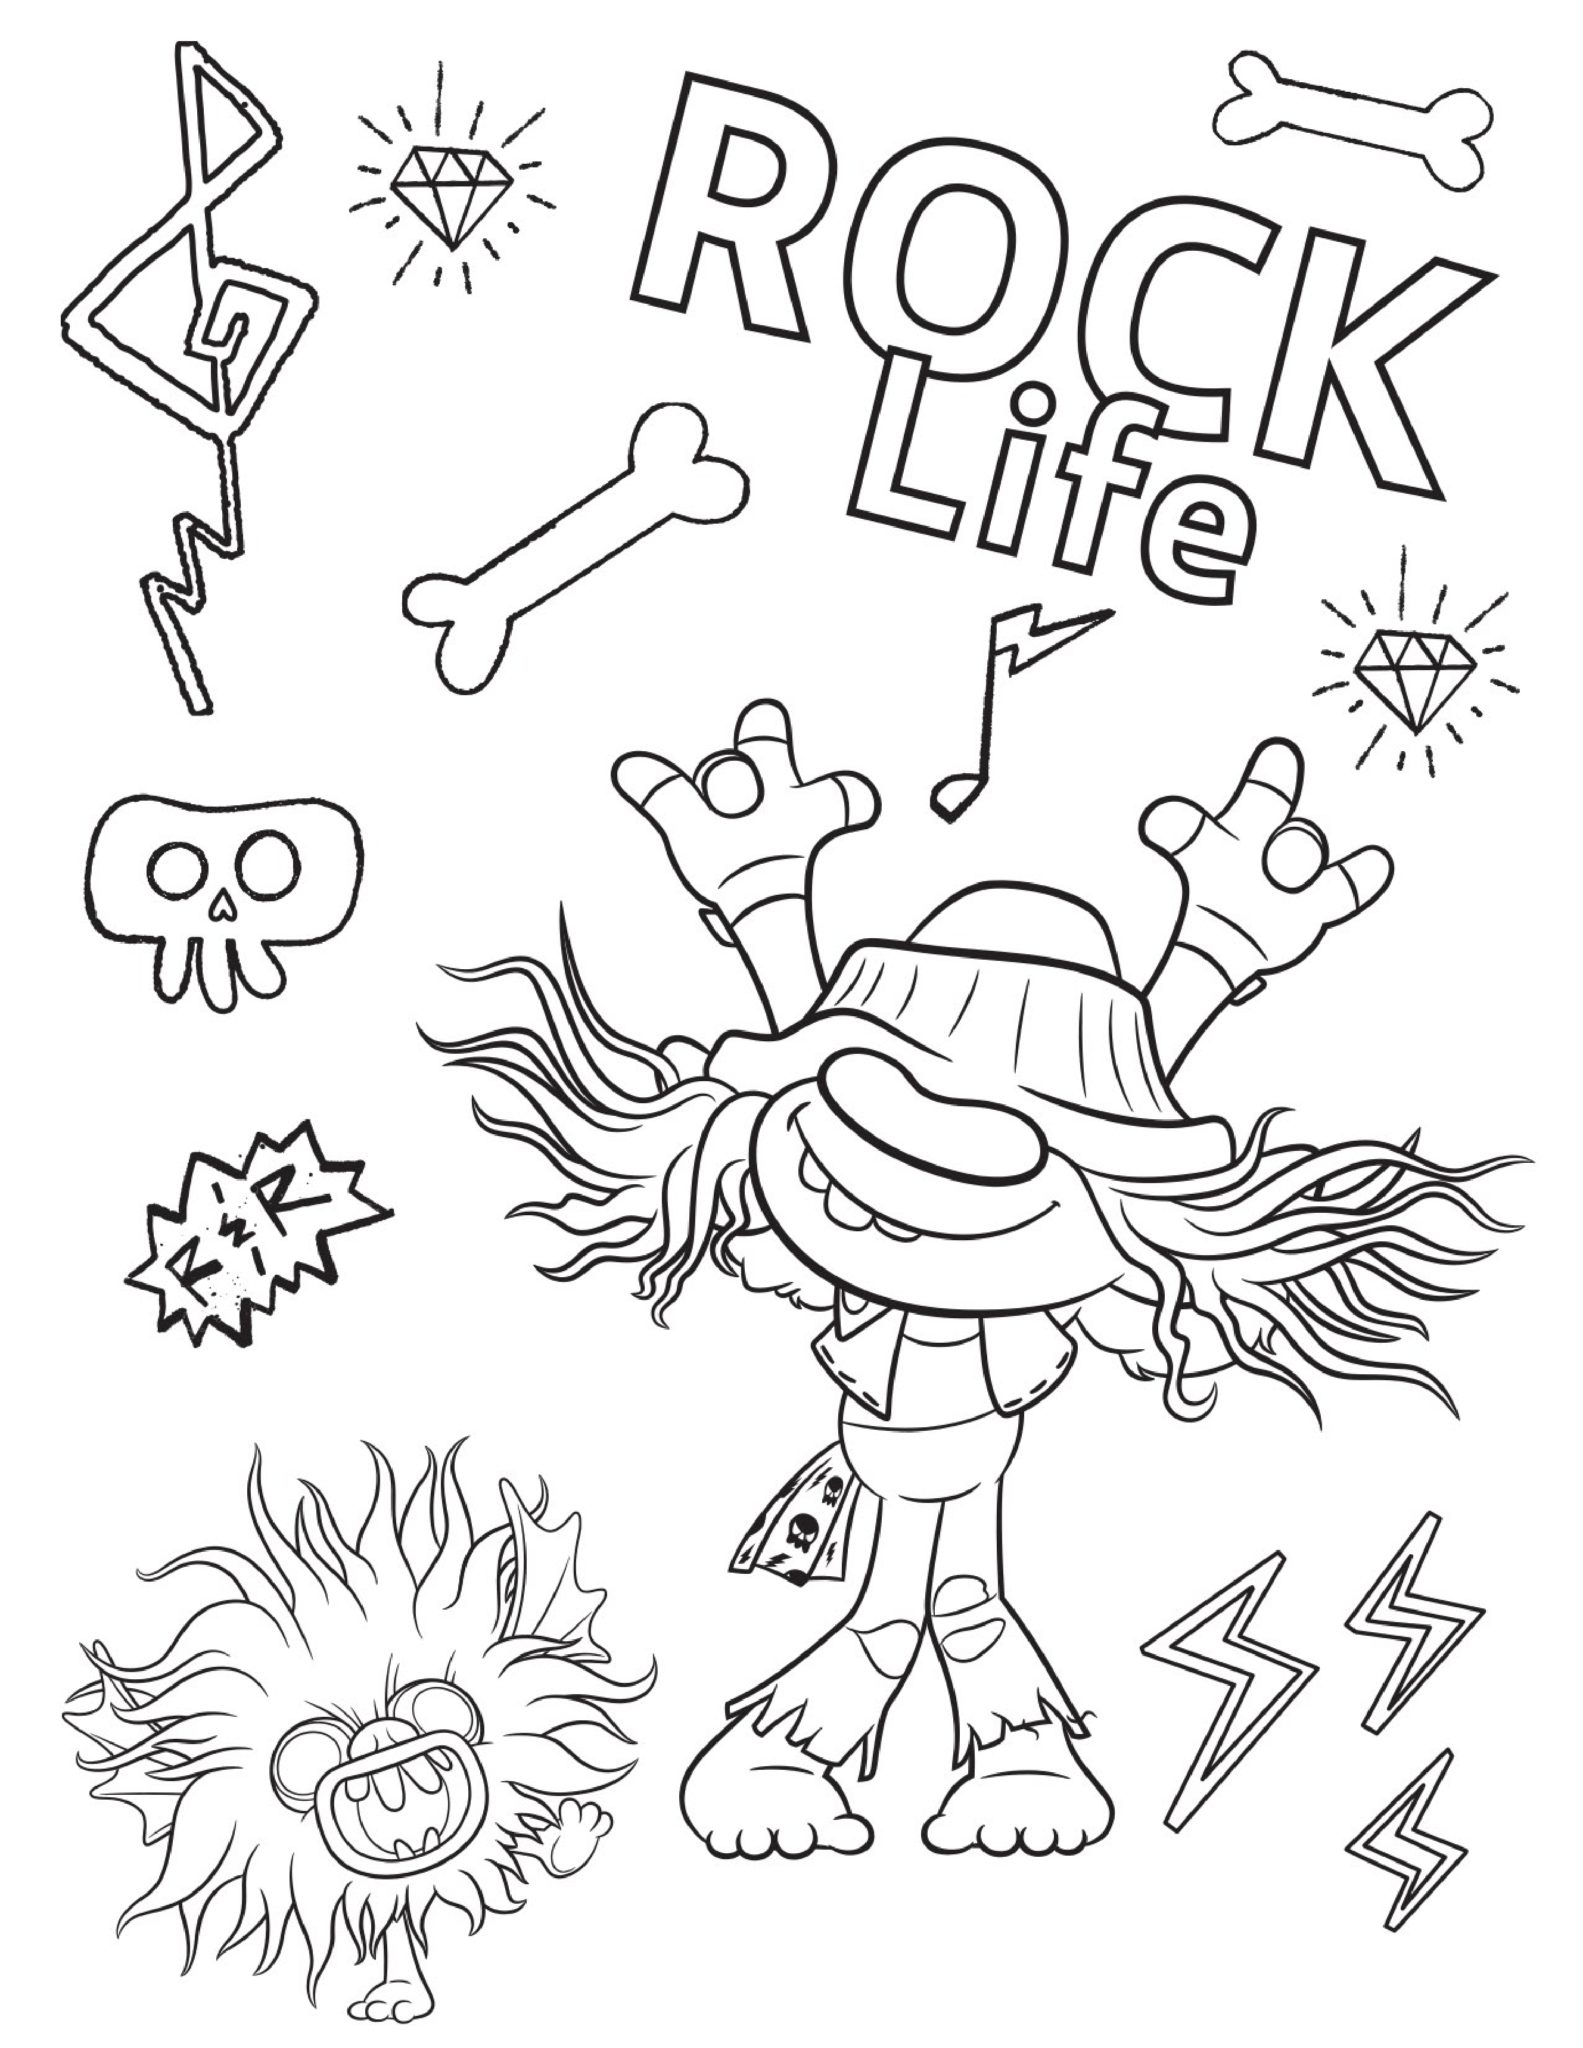 Free Printable Trolls Coloring Pages Activity Sheets Zoom Backgrounds More Crazy Adventures In Parenting